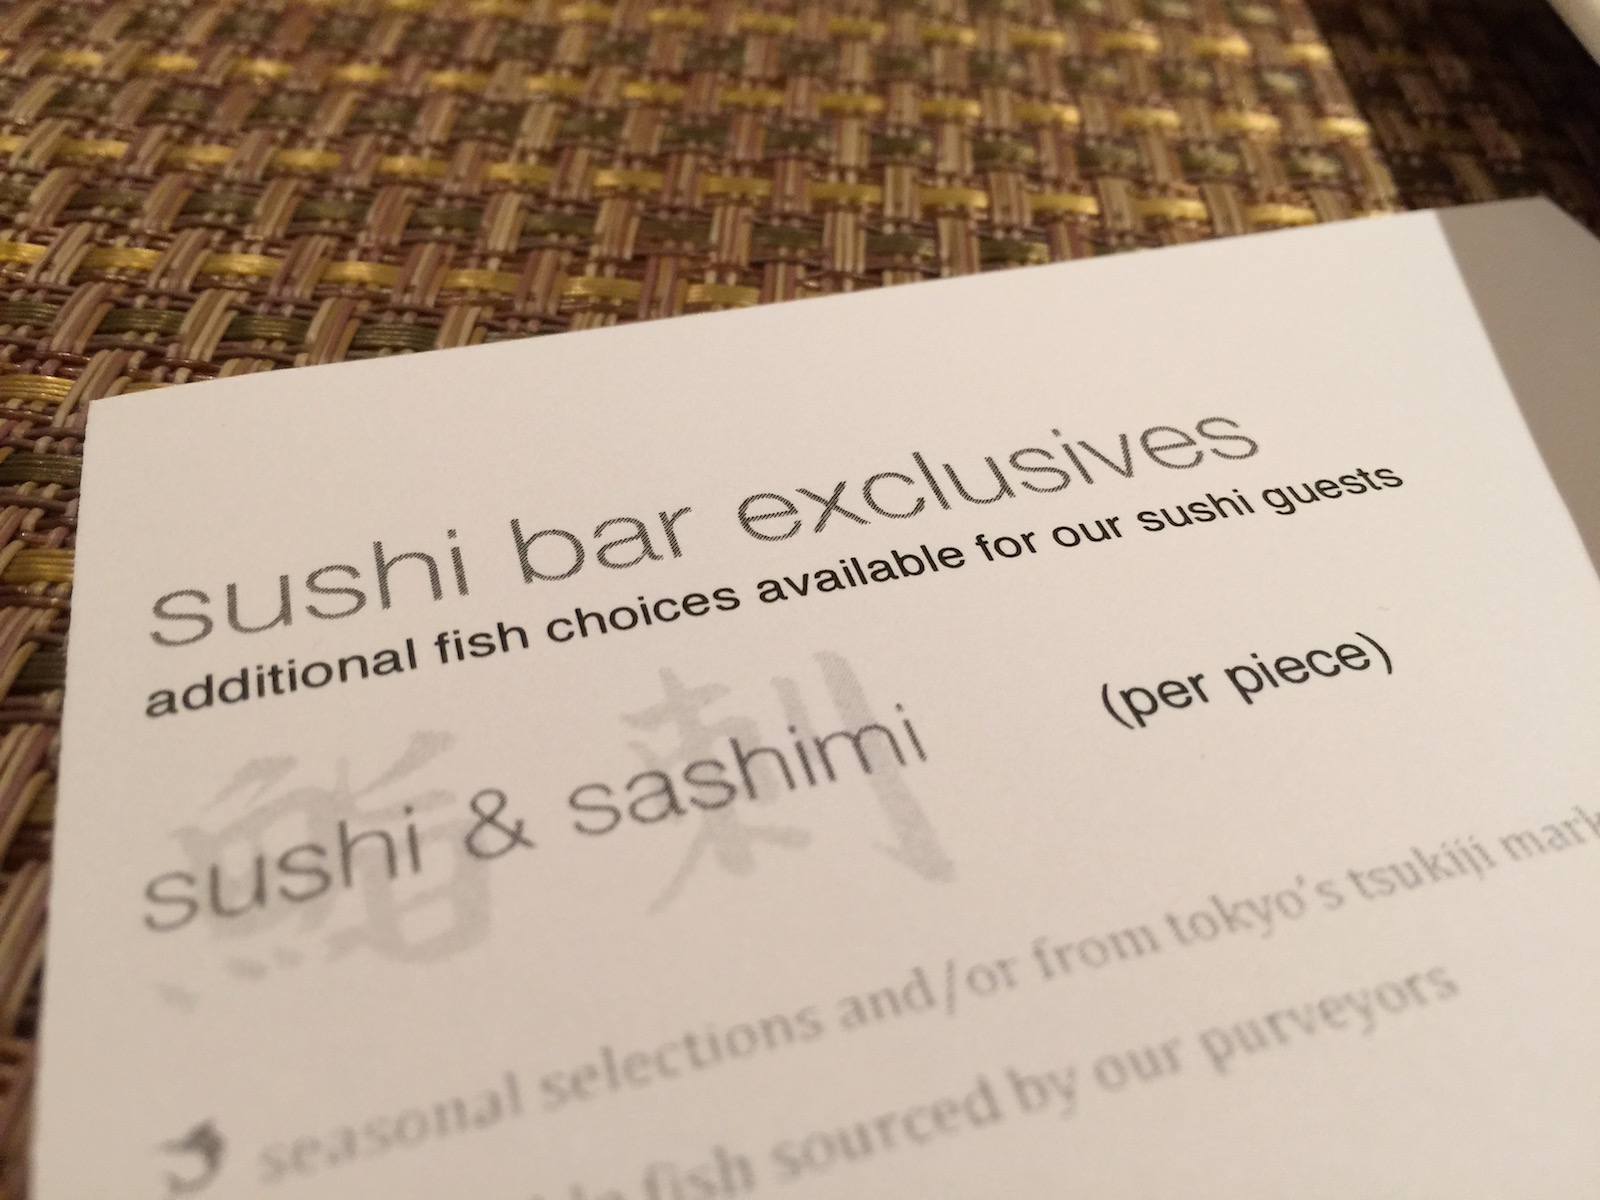 Sushi Ran - sushi bar exclusives